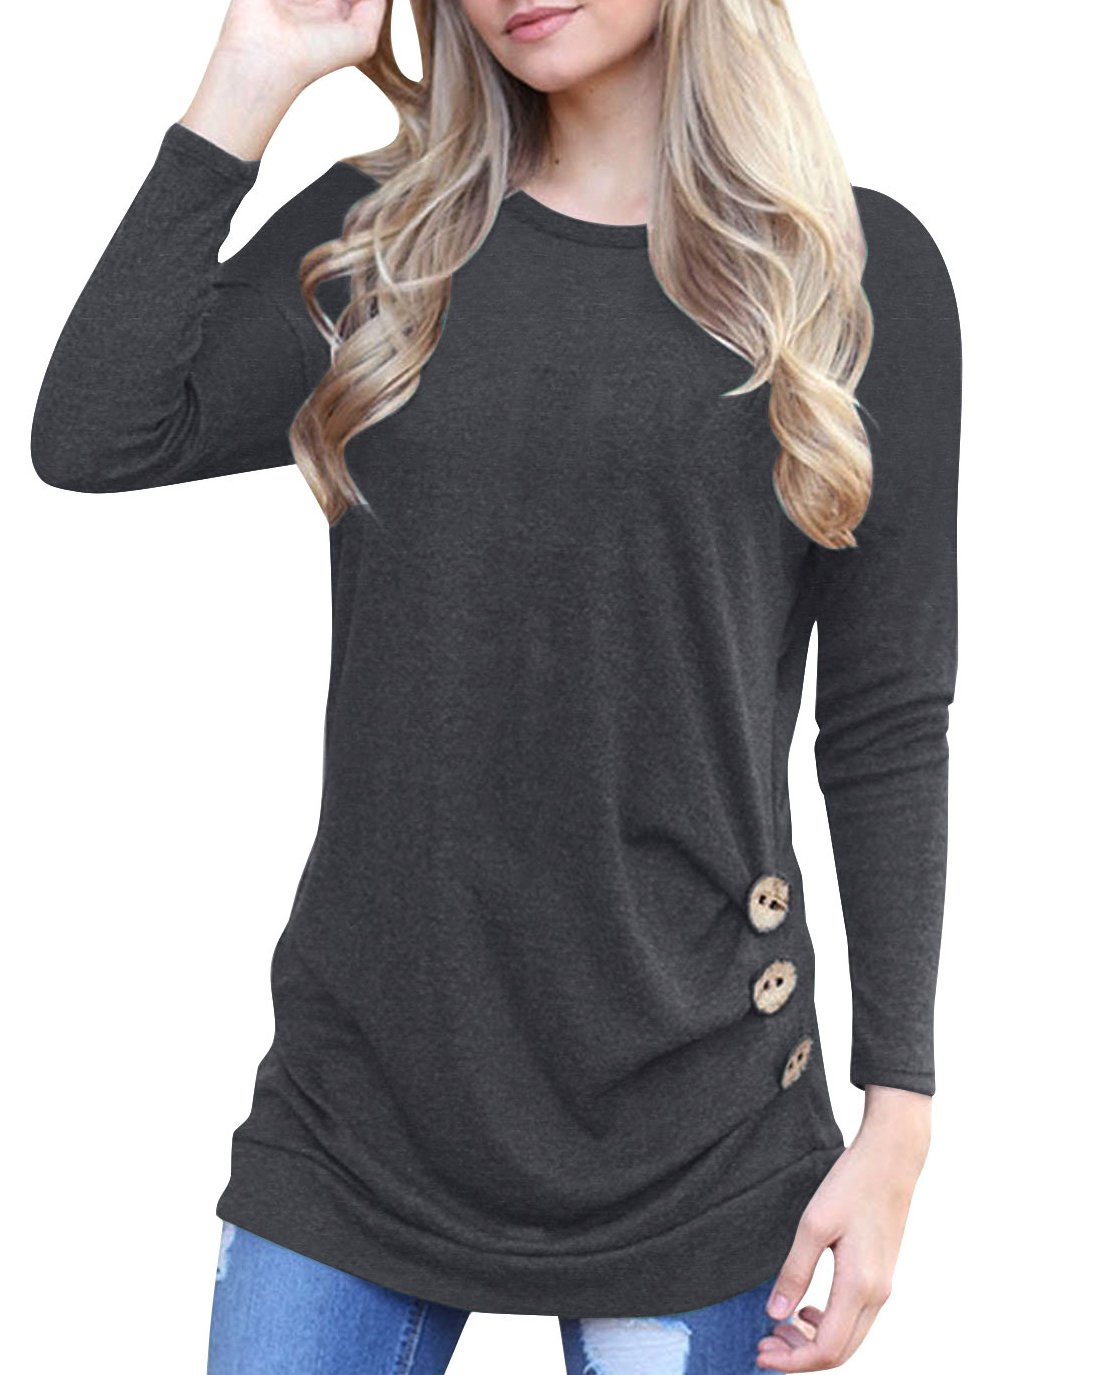 Doris Kids Women's Casual Tunic Top Sweatshirt Long Sleeve Blouse T-Shirt Button Decor Grey XL